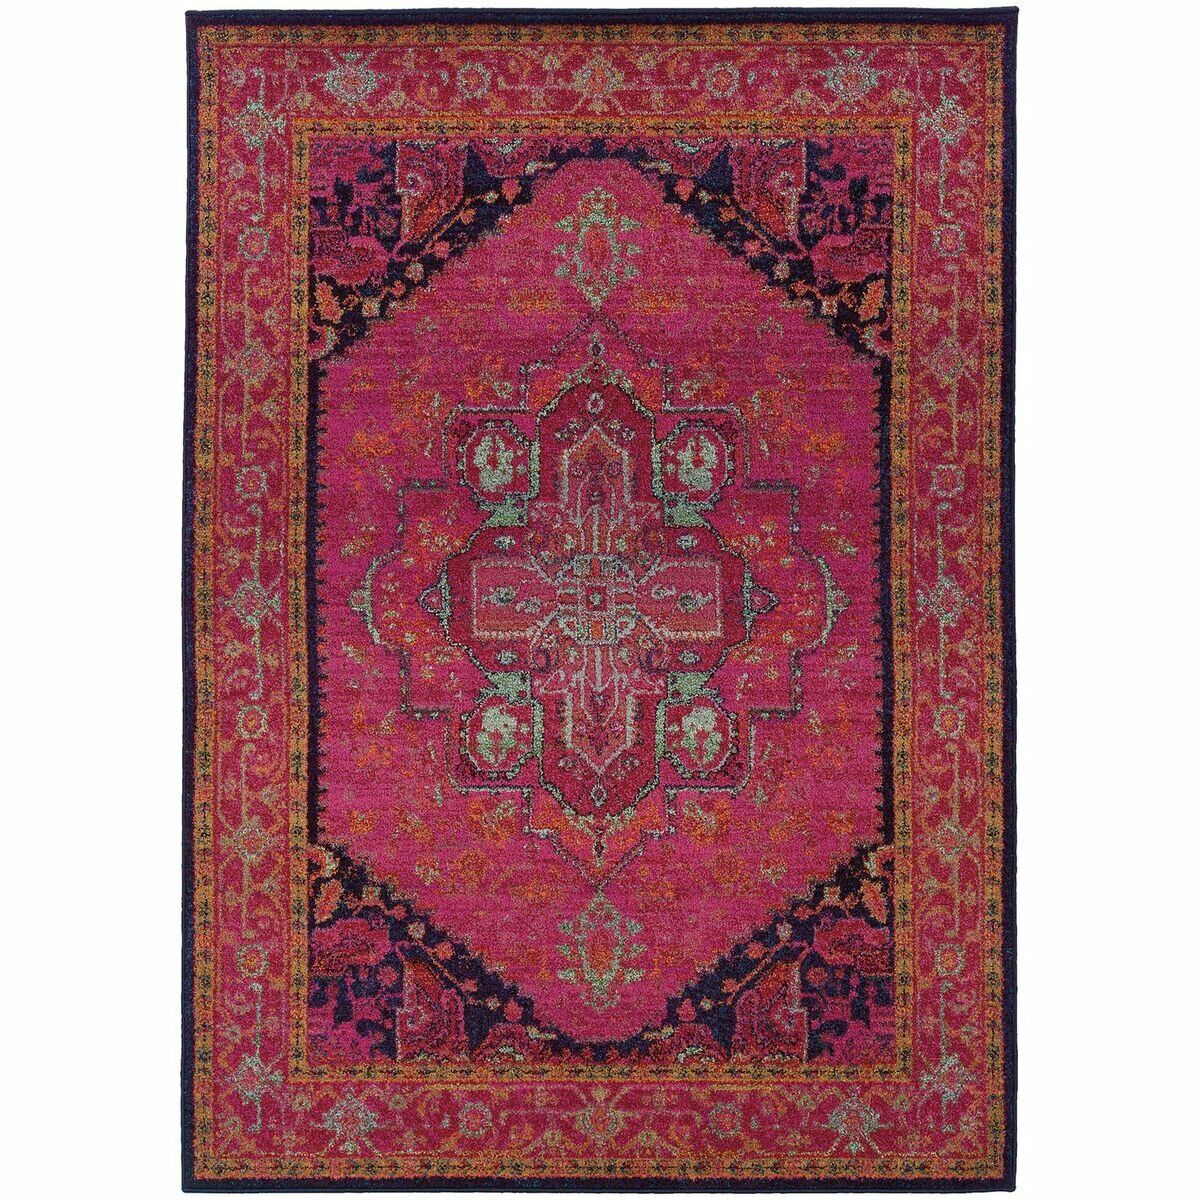 The Conestoga Trading Co. Aura Updated Traditional Pink